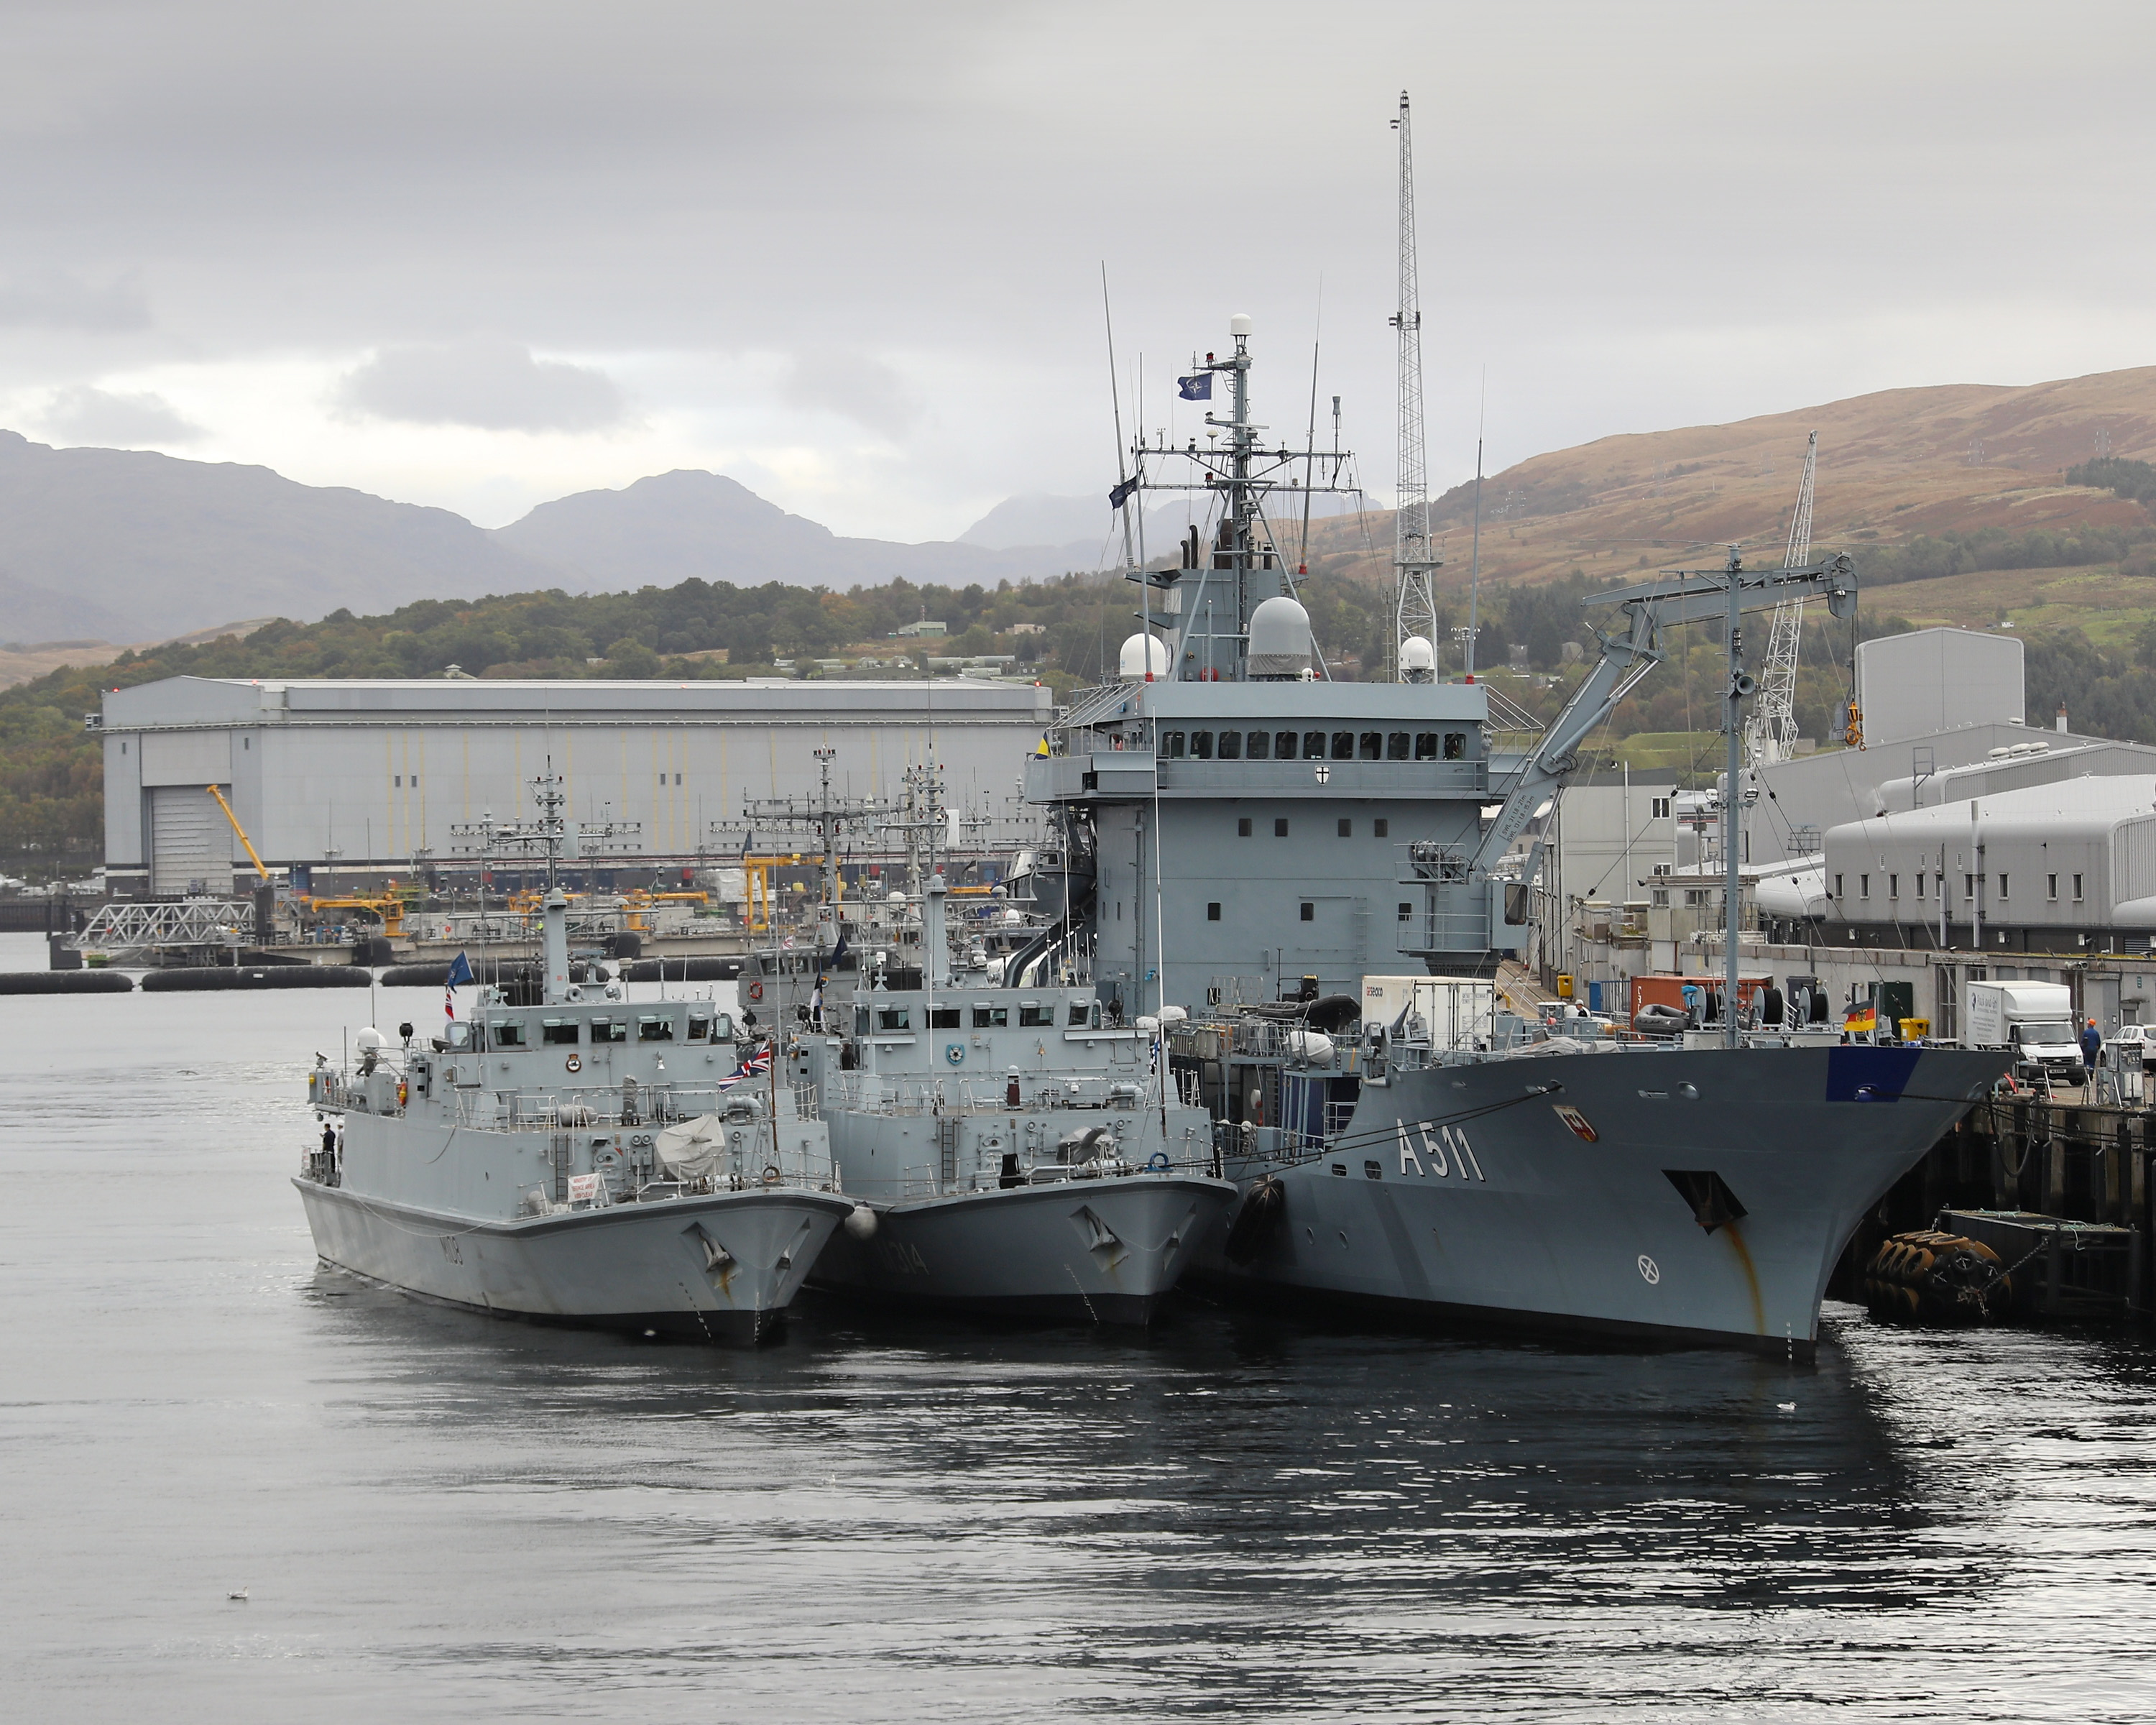 WESTMINSTER COMMITTEE EXAMINATION OF MILITARY BASES IN SCOTLAND TAKES OFF